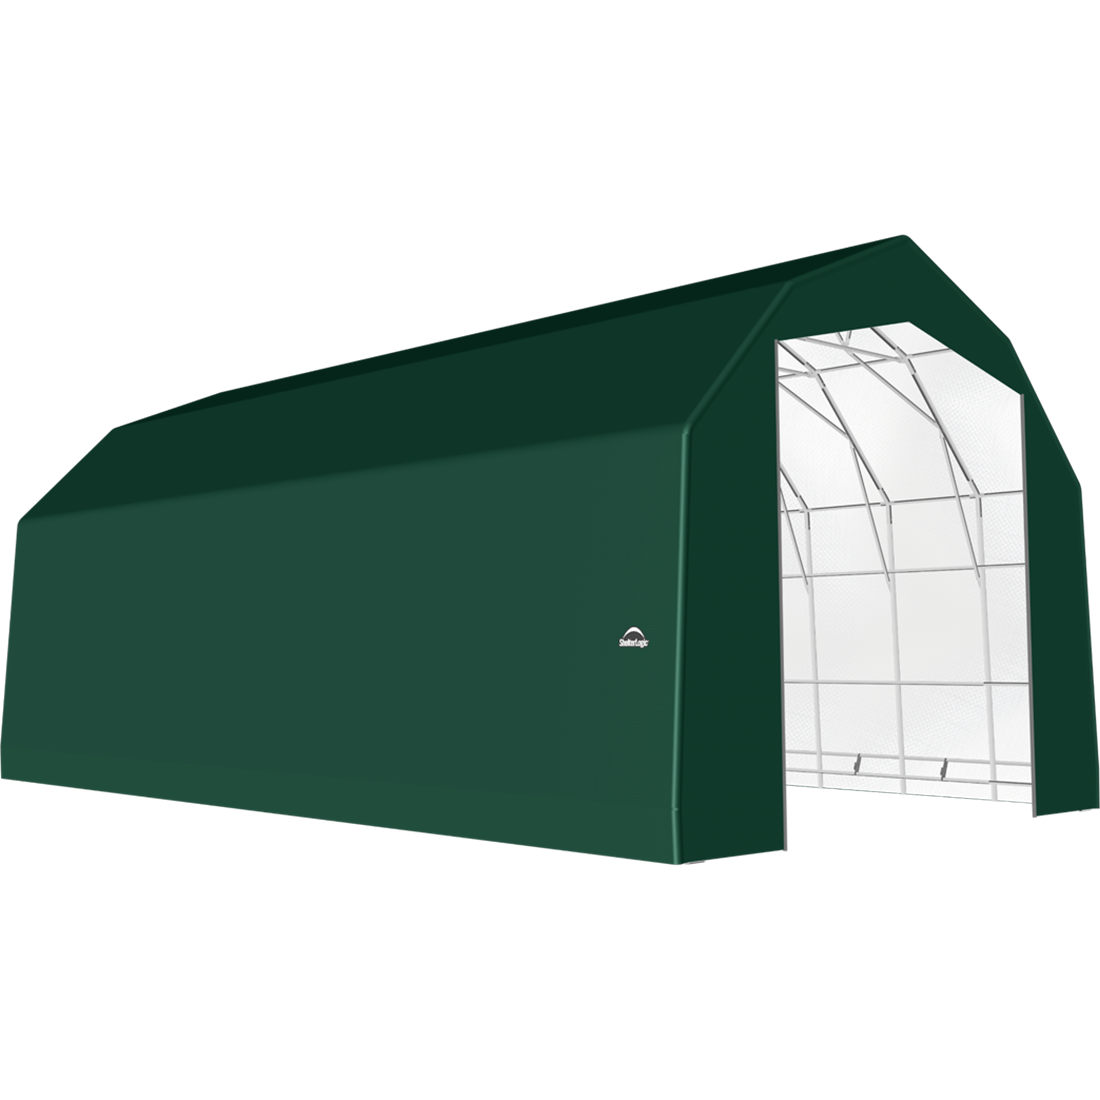 SP Barn 25X32X20 Green 14 oz PE Shelter